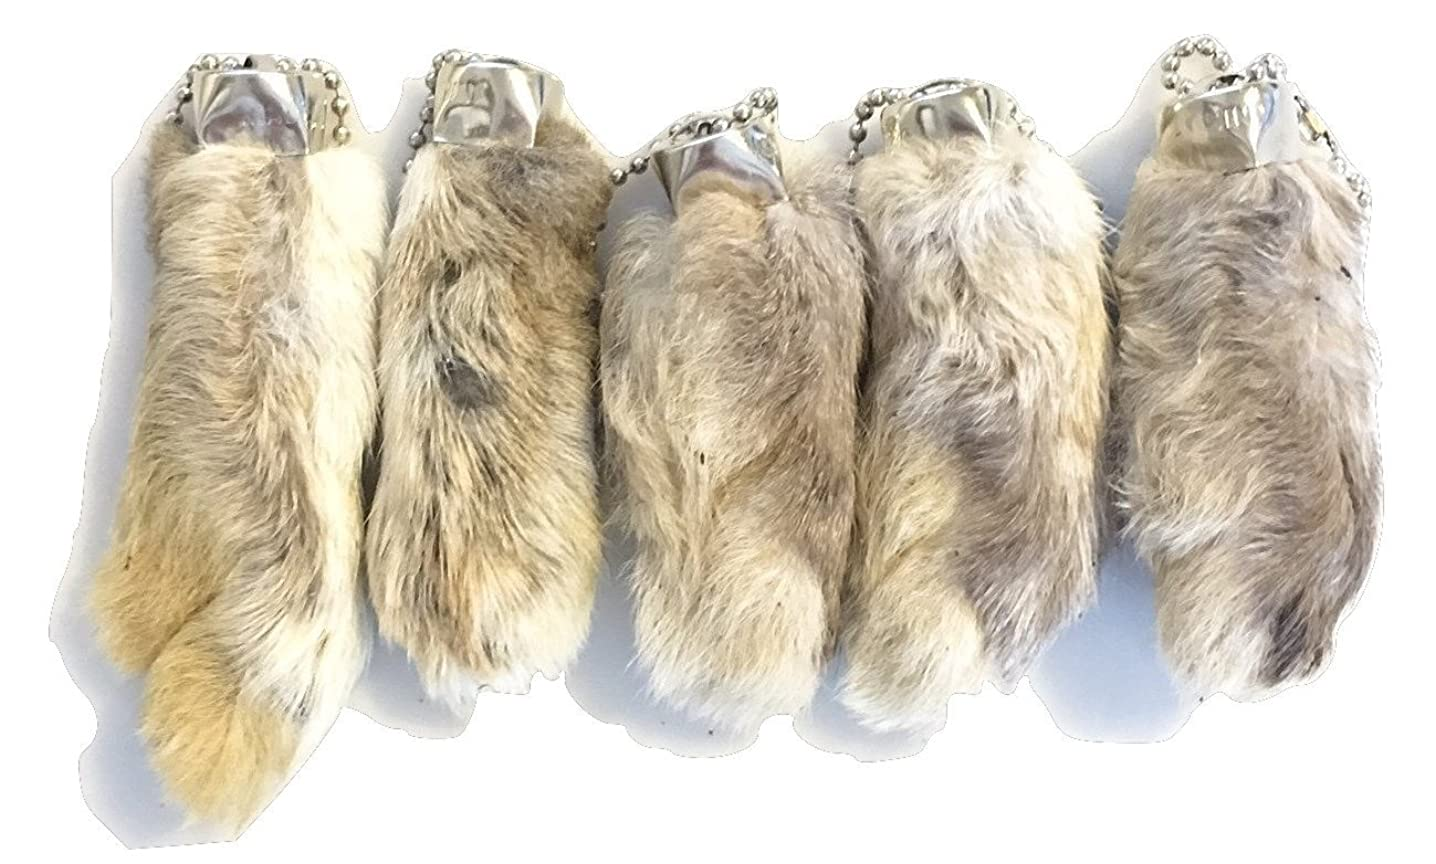 Dangerous Threads Rabbit Rabbits Foot Keychain White/Natural 5 Pcs